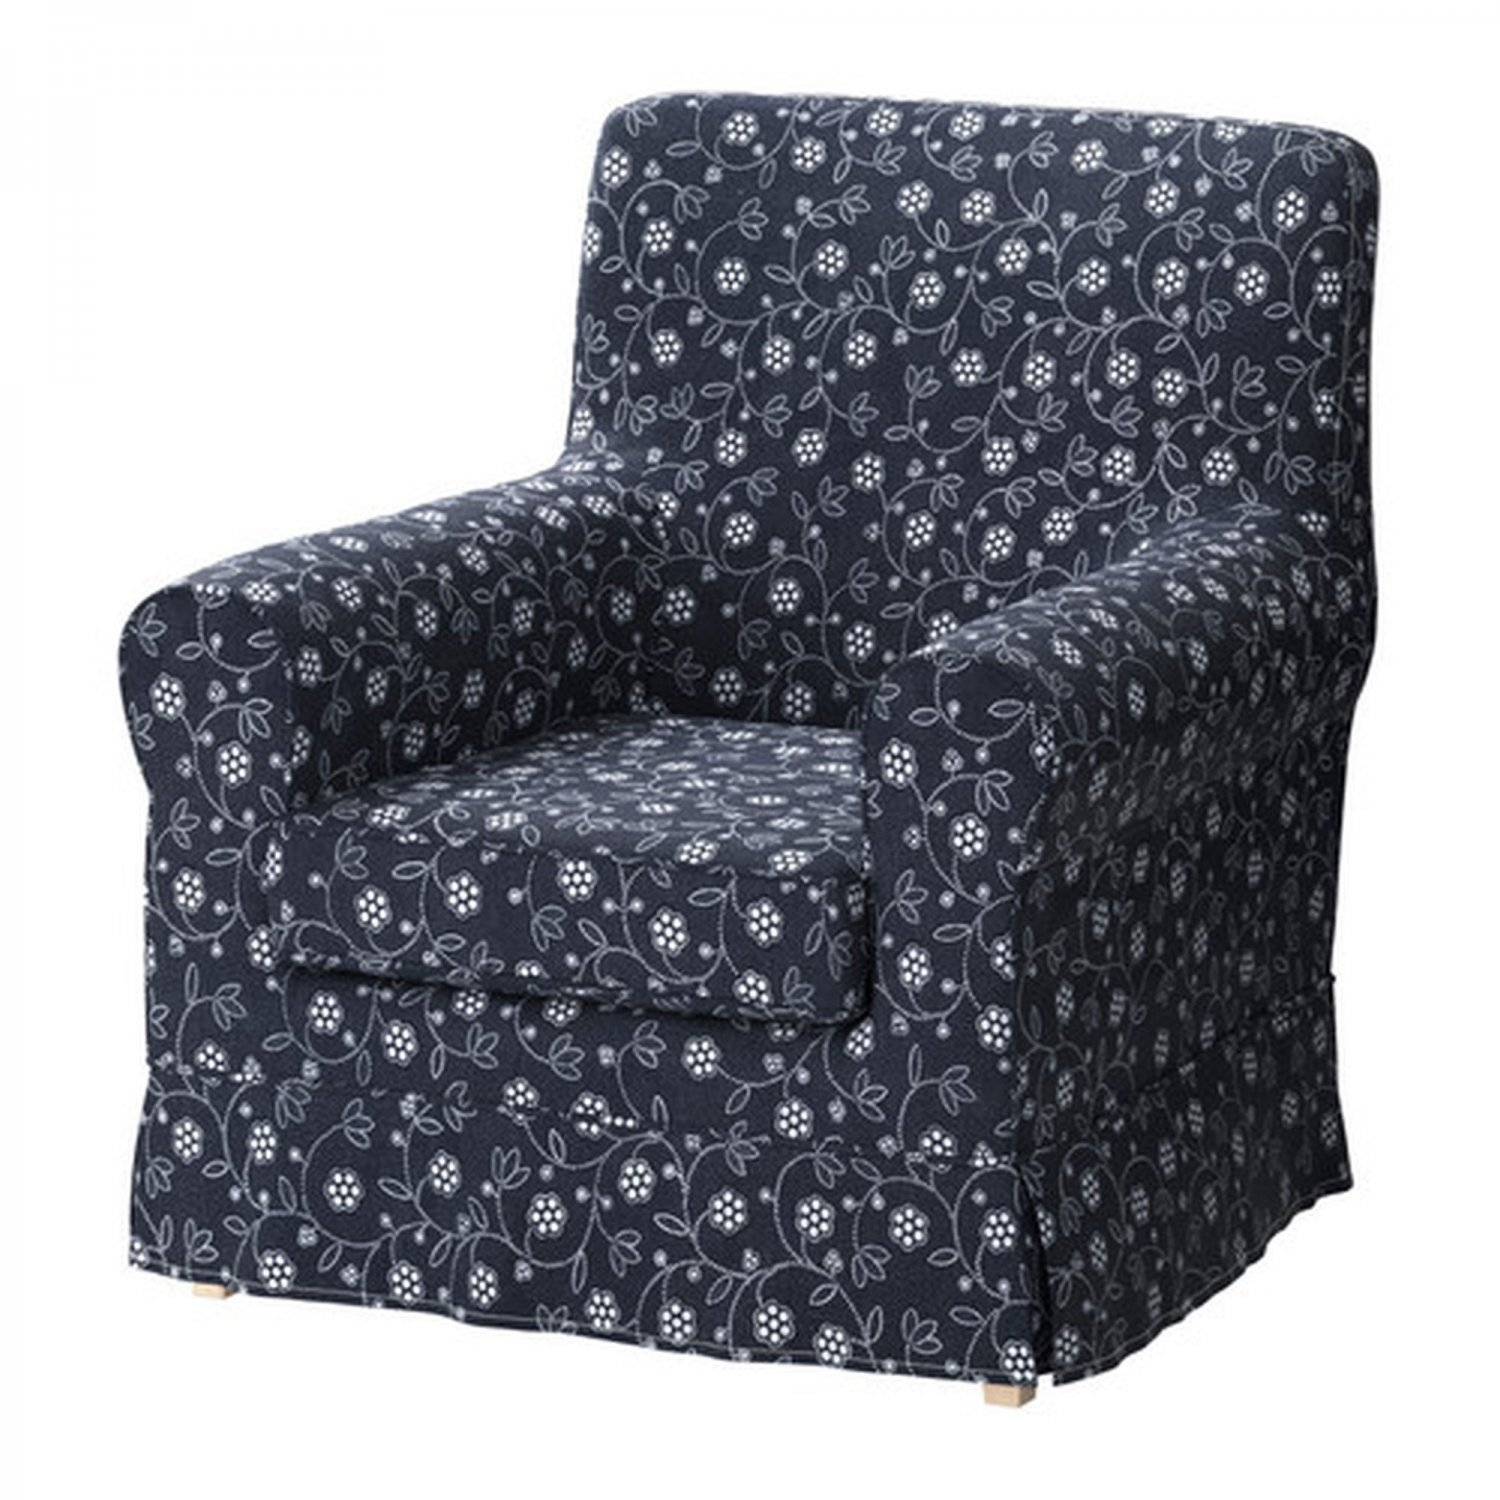 ikea ektorp jennylund armchair slipcover cover laxa blue. Black Bedroom Furniture Sets. Home Design Ideas